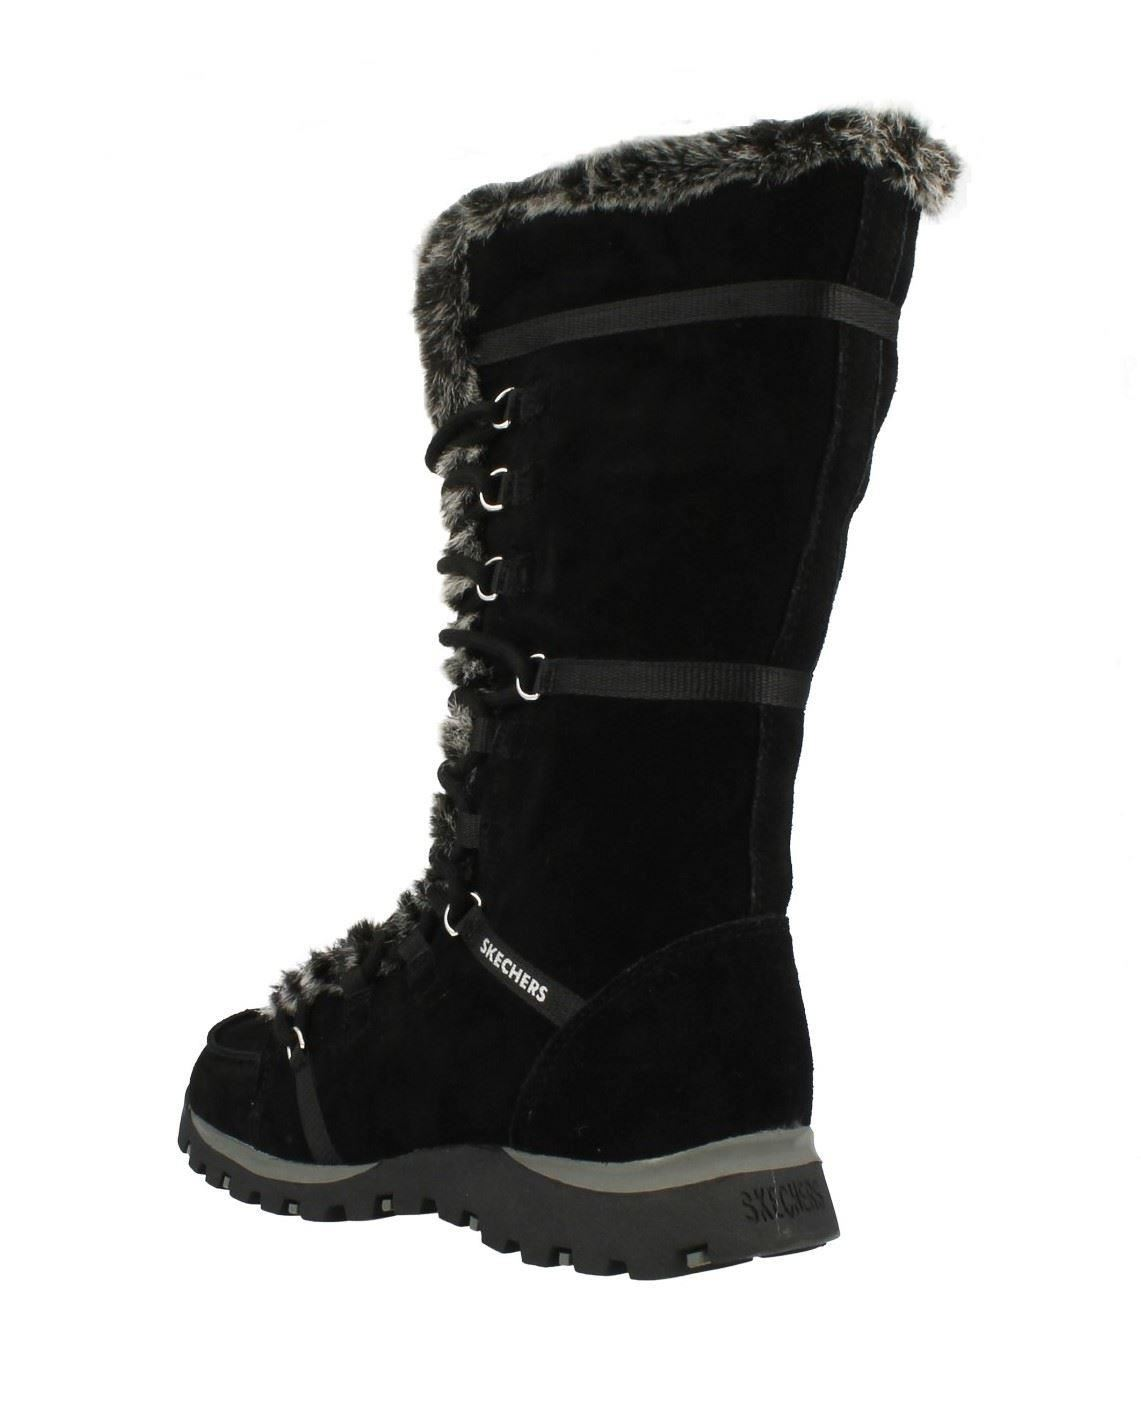 Ladies Skechers Mid Calf Winter Boots Grand Jams Unlimited